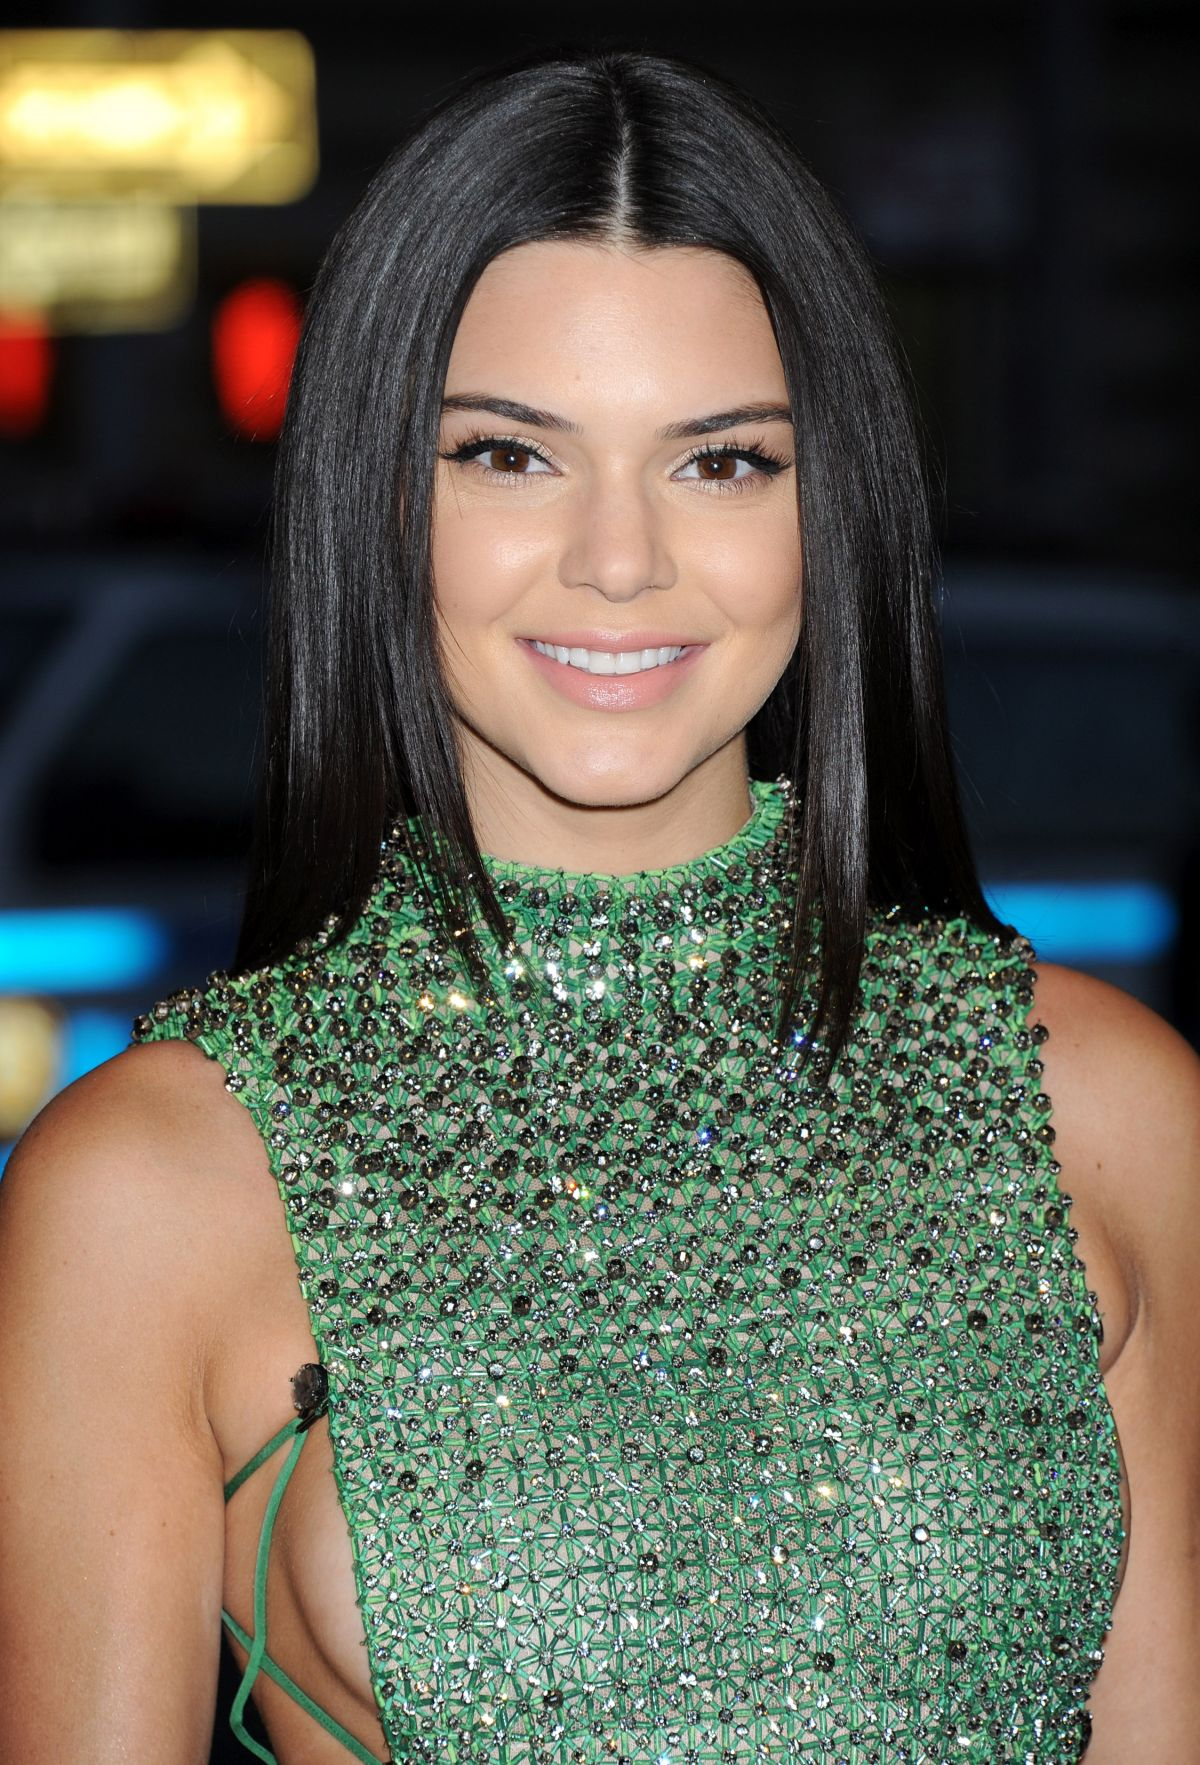 Kendall Jenner Caviar Kaspia Dinner After Pharmacy Stop: KENDALL JENNER At MET Gala 2015 In New York